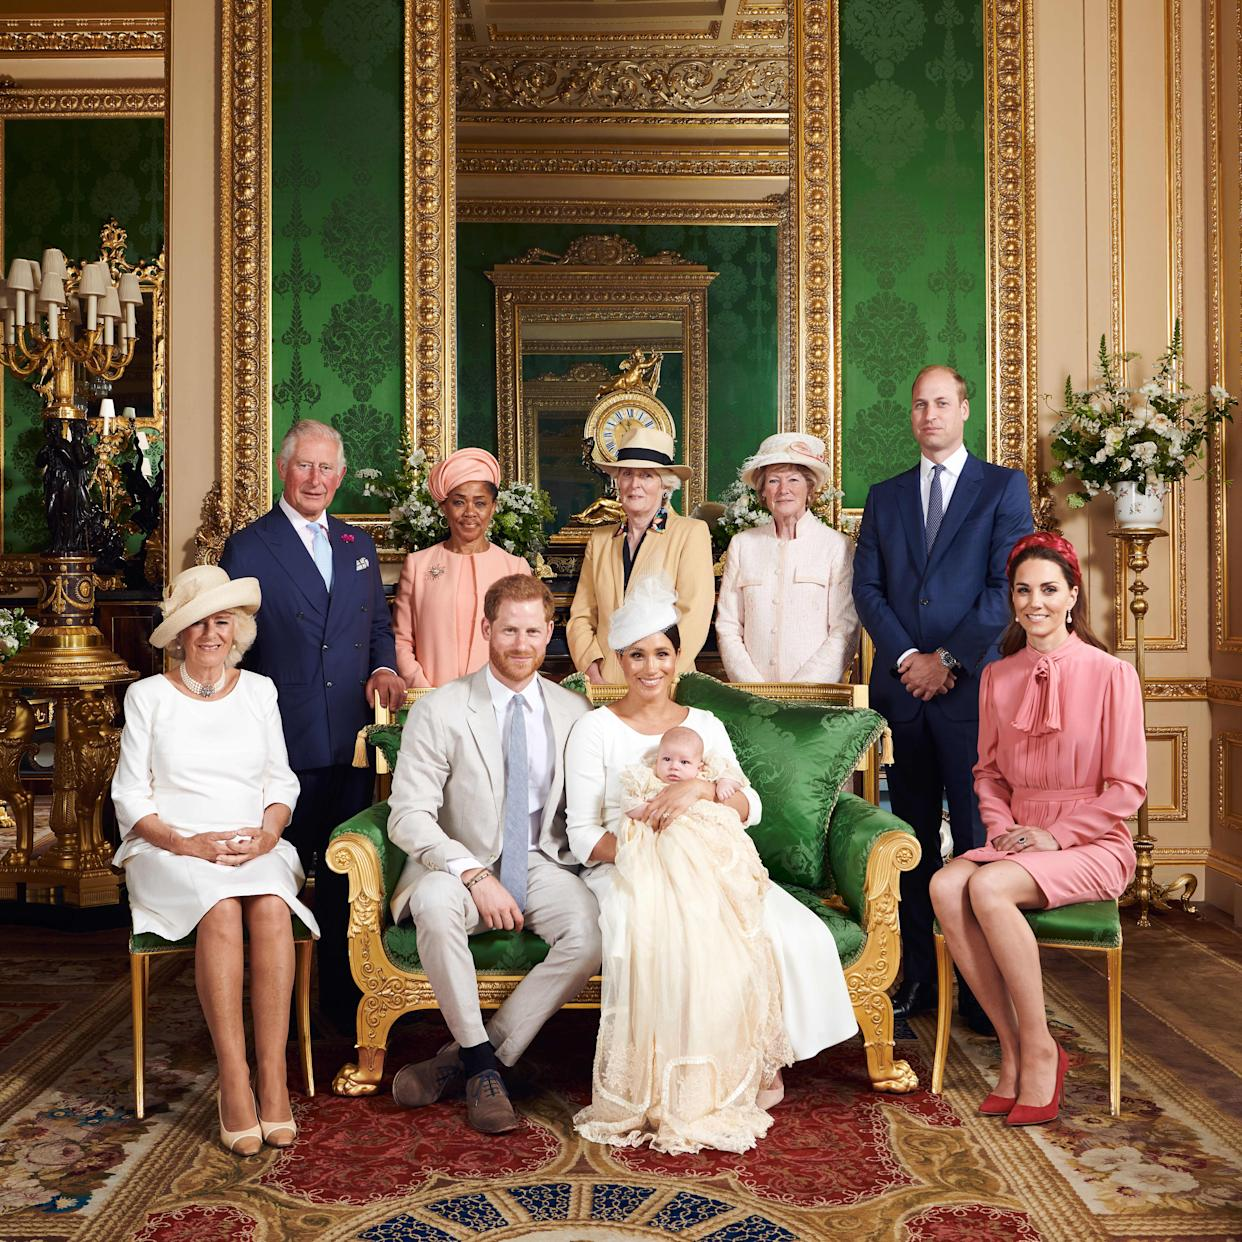 """This official handout Christening photograph released by the Duke and Duchess of Sussex shows Britain's Prince Harry, Duke of Sussex (centre left), and his wife Meghan, Duchess of Sussex holding their baby son, Archie Harrison Mountbatten-Windsor flanked by (L-R) Britain's Camilla, Duchess of Cornwall, Britain's Prince Charles, Prince of Wales, Ms Doria Ragland, Lady Jane Fellowes, Lady Sarah McCorquodale, Britain's Prince William, Duke of Cambridge, and Britain's Catherine, Duchess of Cambridge in the Green Drawing Room at Windsor Castle, west of London on July 6, 2019. - Prince Harry and his wife Meghan had their baby son Archie christened on Saturday at a private ceremony. (Photo by Chris ALLERTON / SUSSEXROYAL / AFP) / XGTY / RESTRICTED TO EDITORIAL USE - MANDATORY CREDIT """"AFP PHOTO / SUSSEXROYAL / CHRIS ALLERTON"""" - NO MARKETING NO ADVERTISING CAMPAIGNS - NO COMMERCIAL USE - NO THIRD PARTY SALES - RESTRICTED TO SUBSCRIPTION USE - NO CROPPING OR MODIFICATION - NOT FOR USE AFTER DECEMBER 31, 2019 - DISTRIBUTED AS A SERVICE TO CLIENTS /         (Photo credit should read CHRIS ALLERTON/AFP/Getty Images)"""